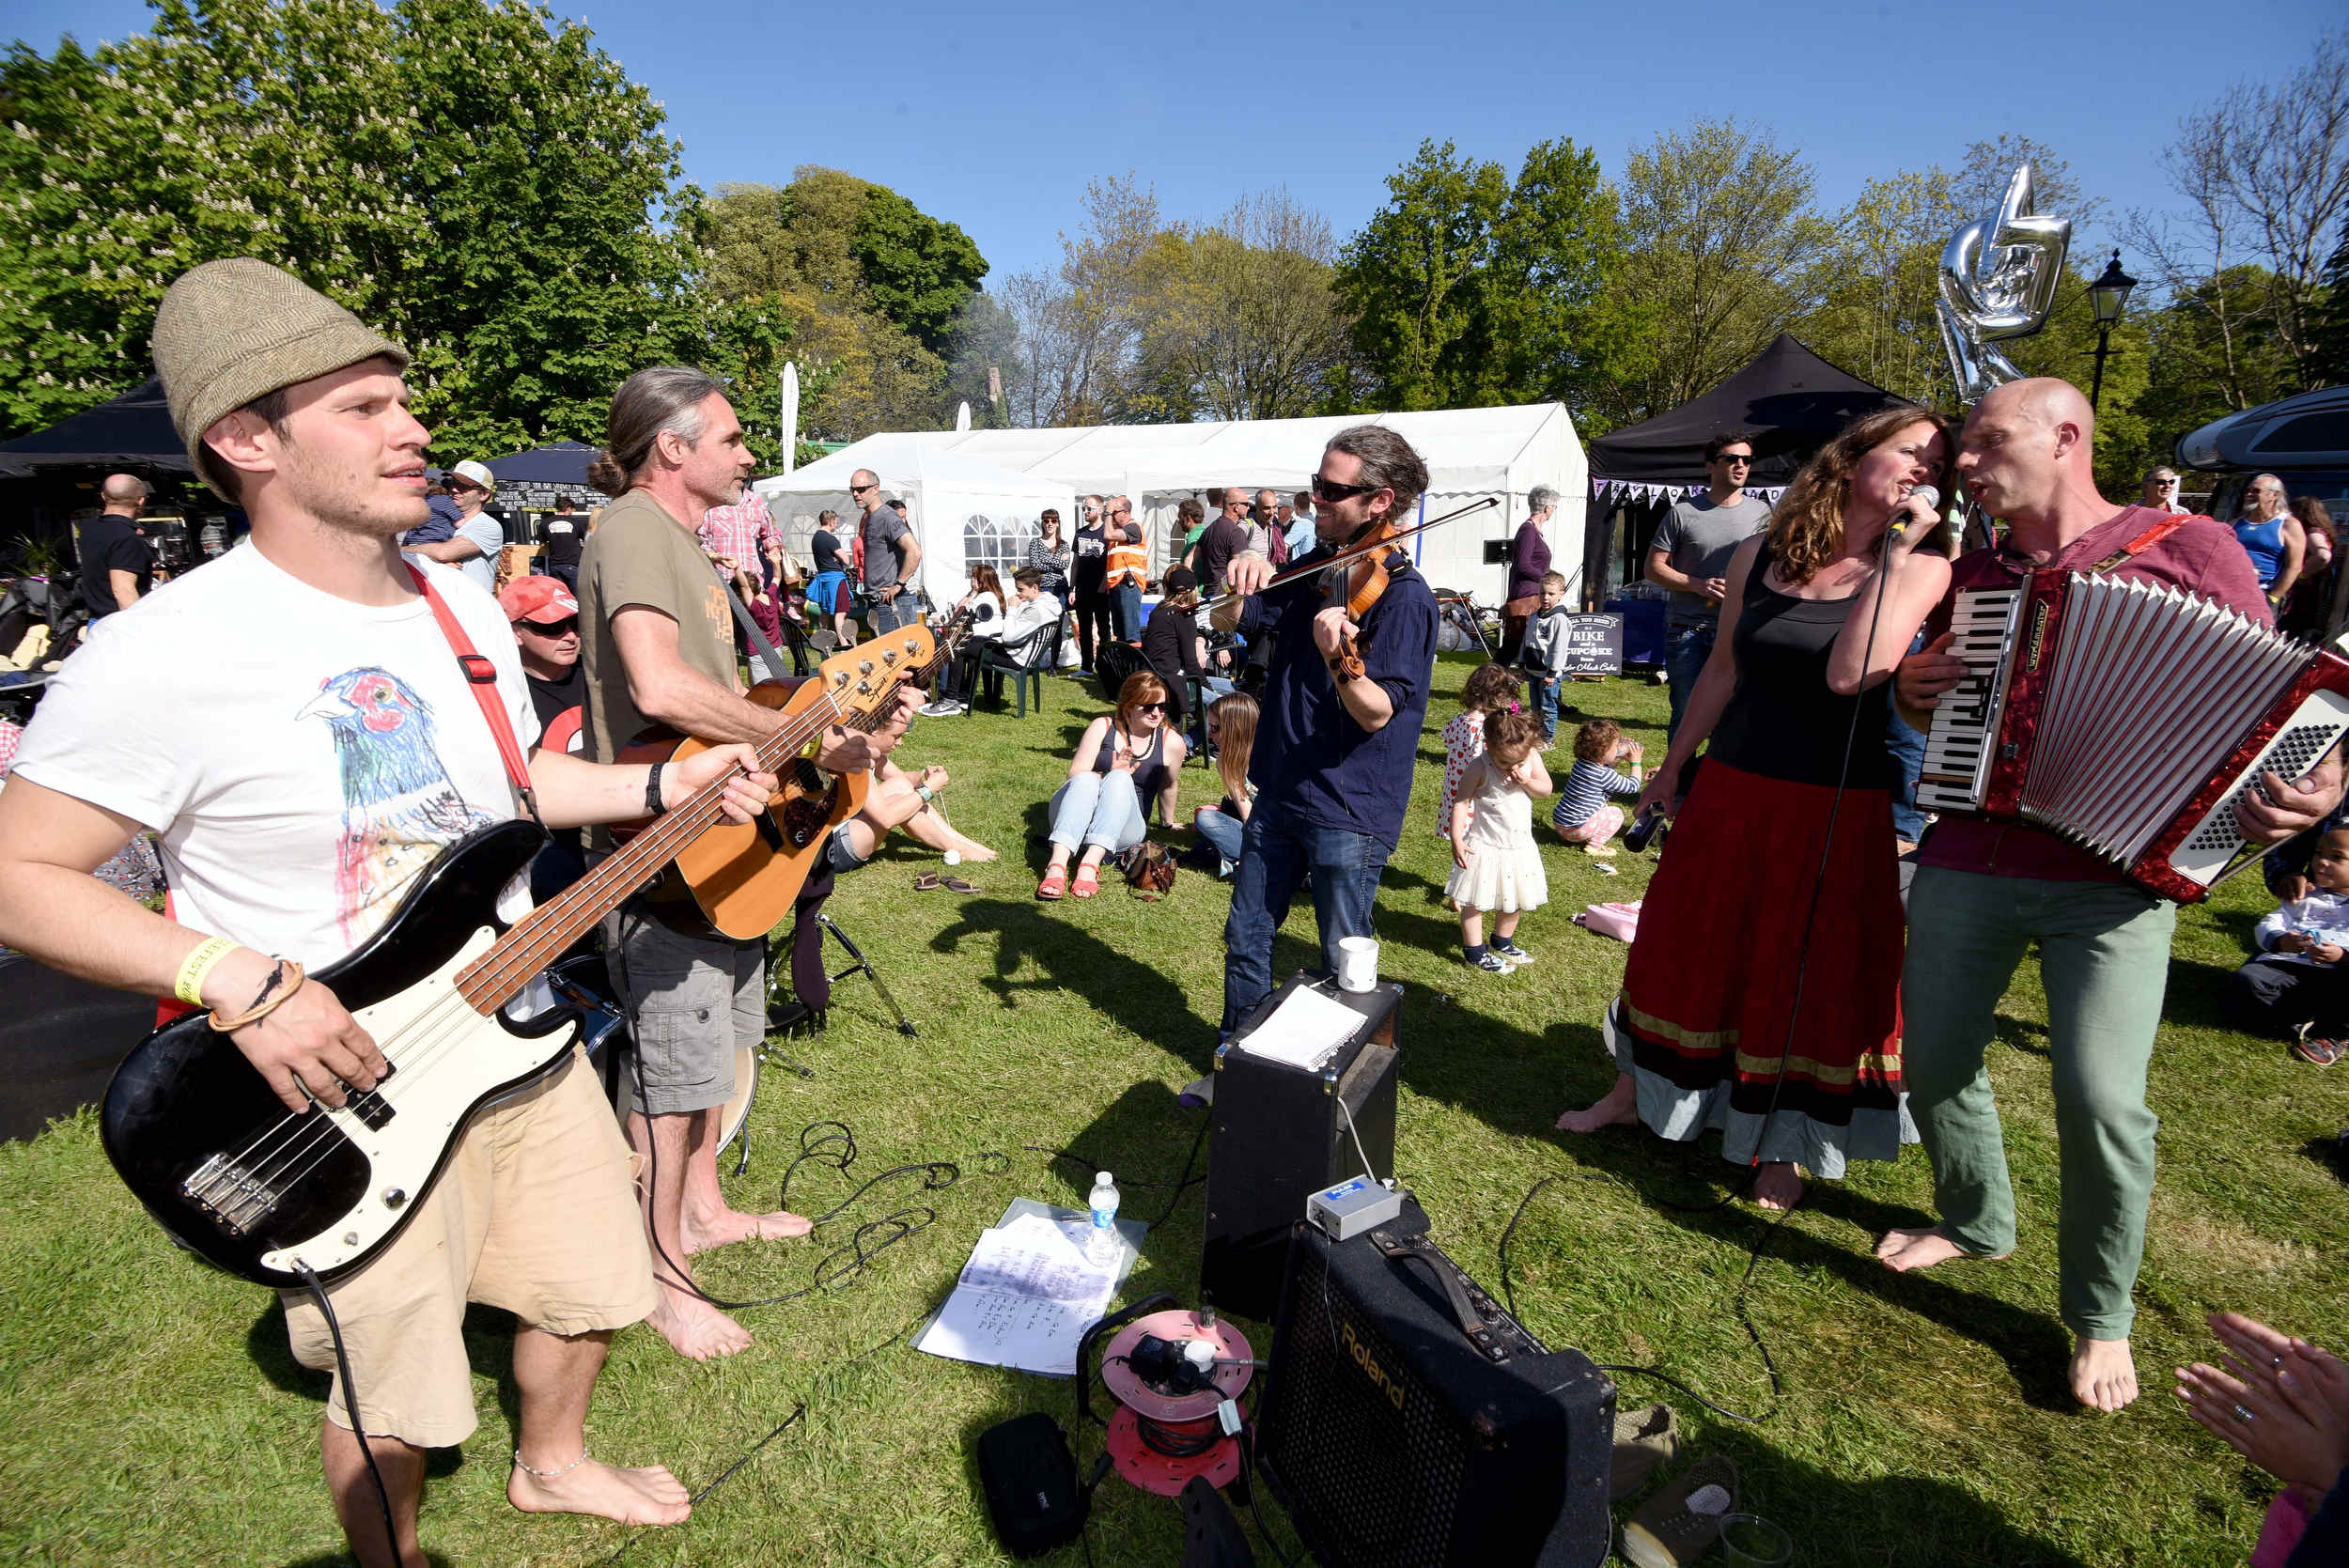 The Milntown festival, part of Cyclefest 2016